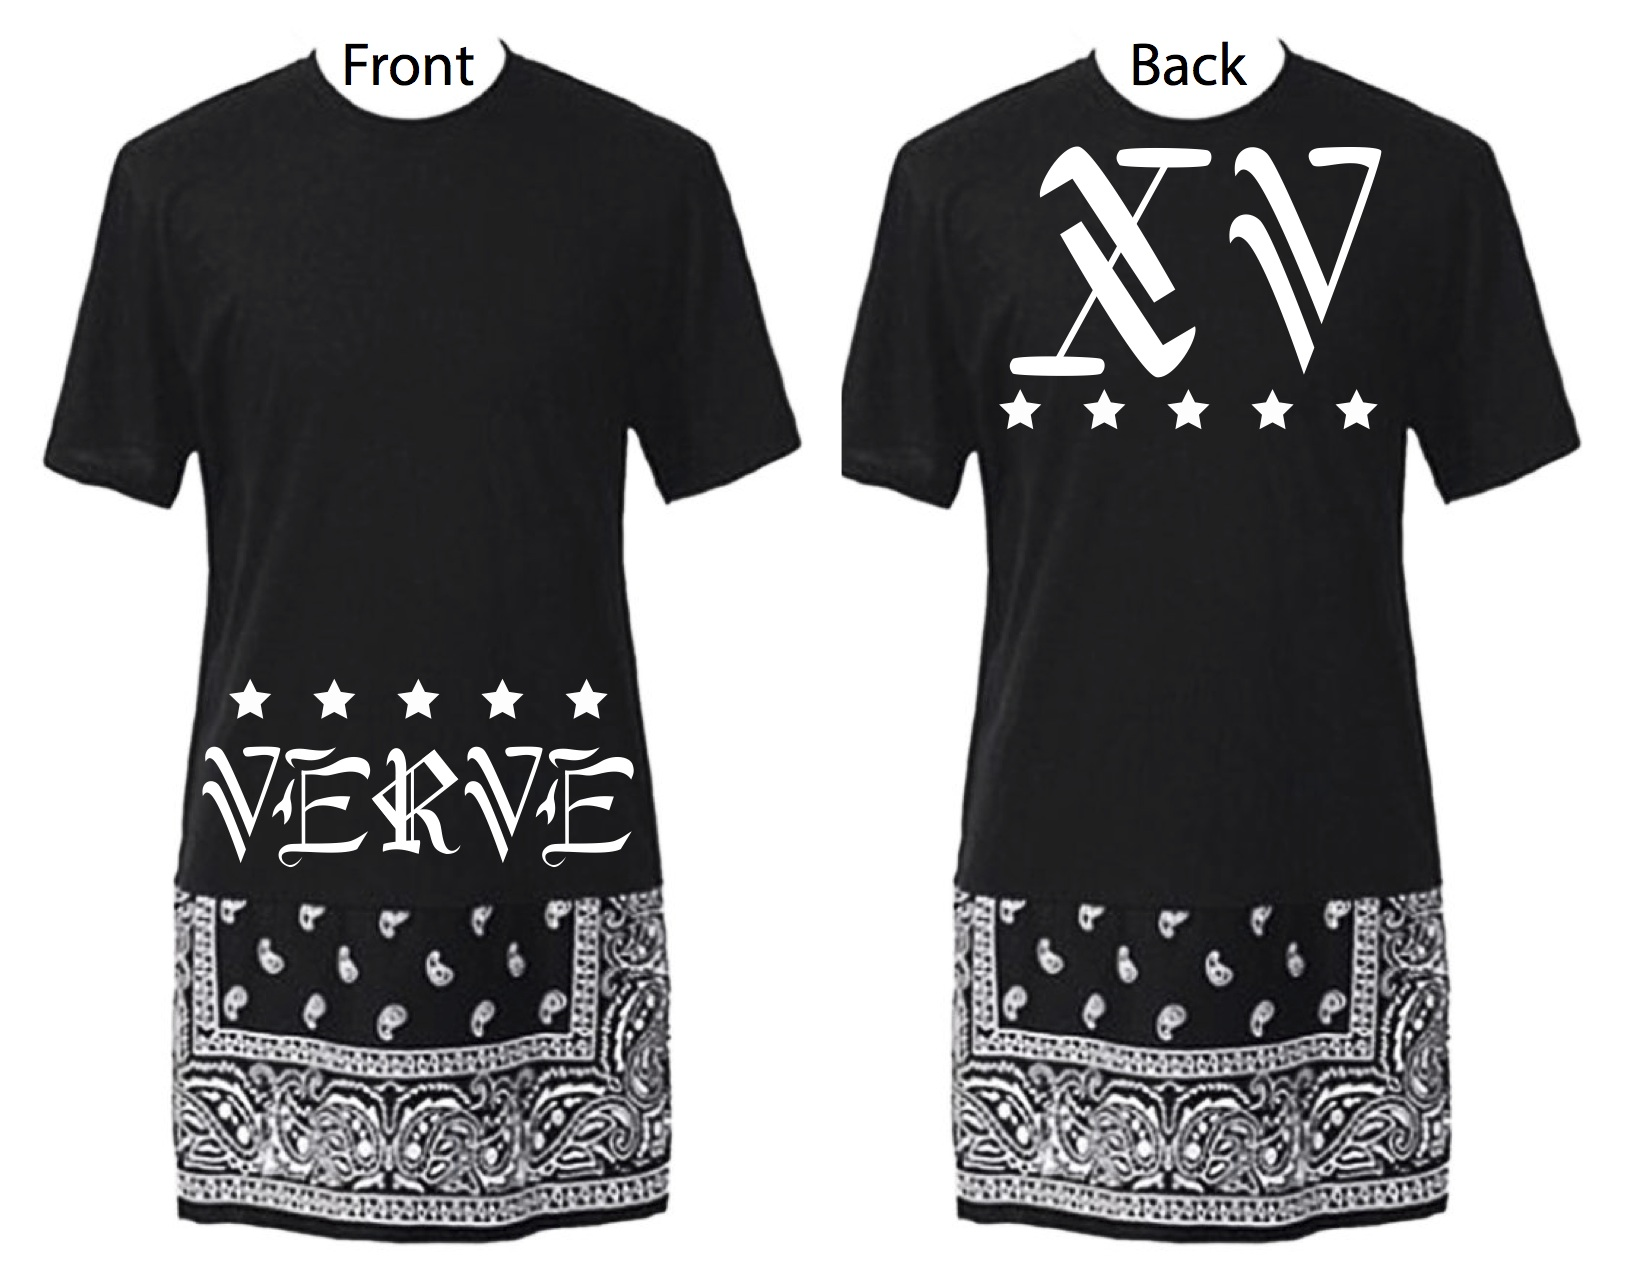 Verve showcase t shirt design 2015 v3bn